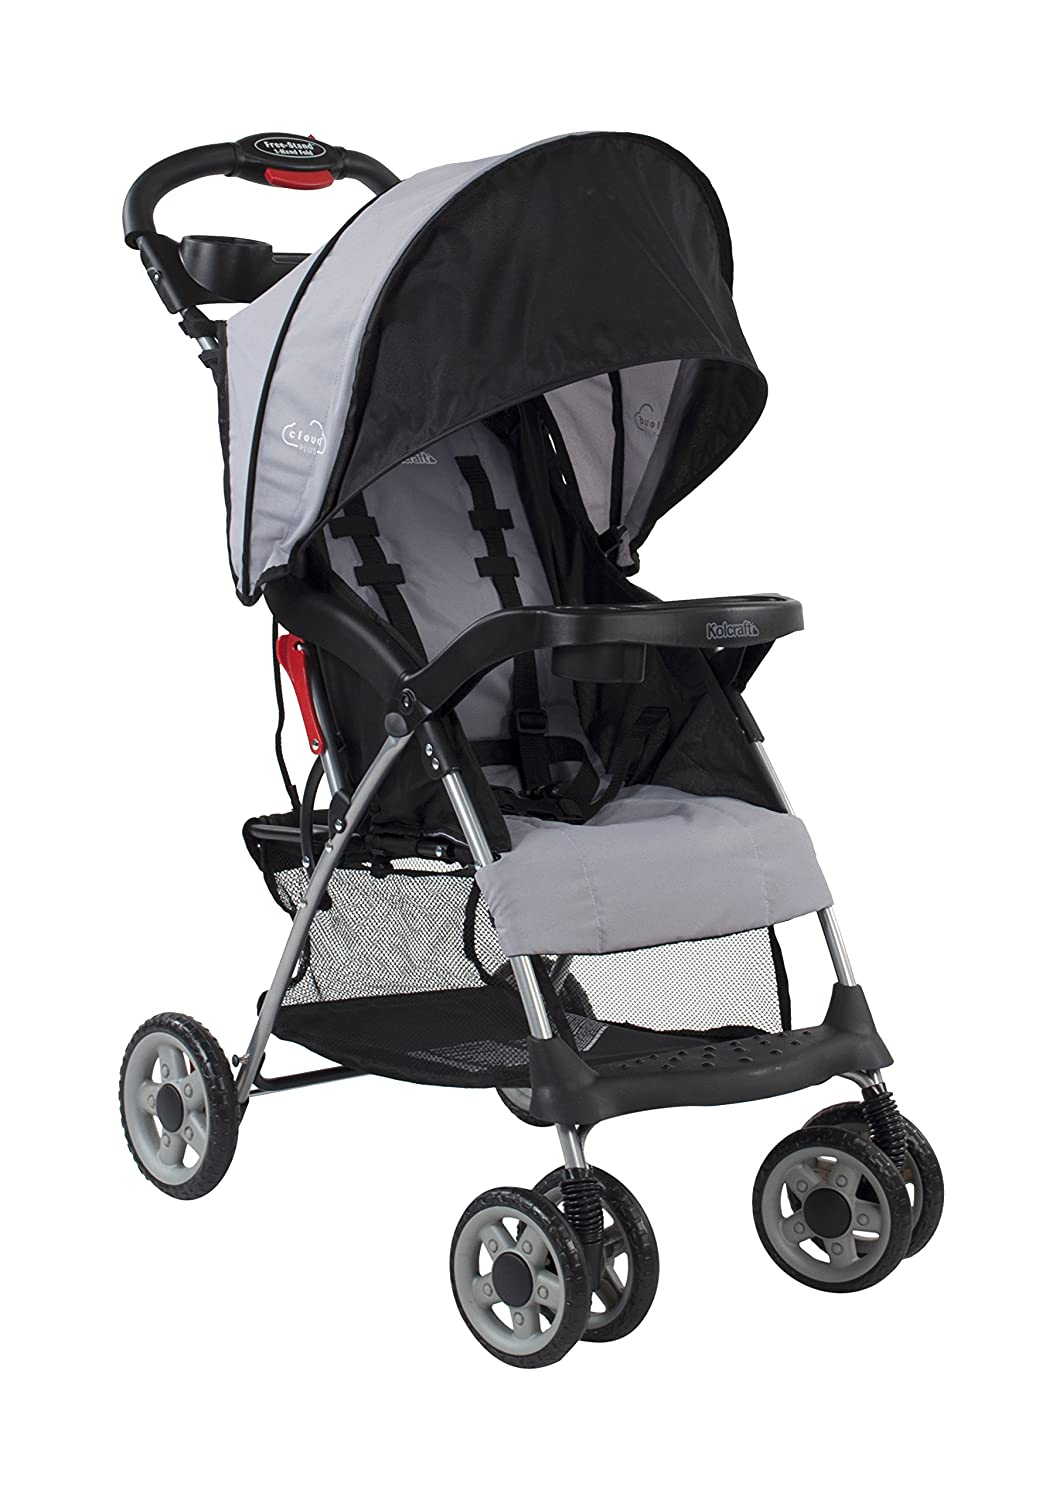 Review of Kolcraft Cloud Plus Lightweight Easy Fold Compact Travel Baby Stroller, Slate Grey